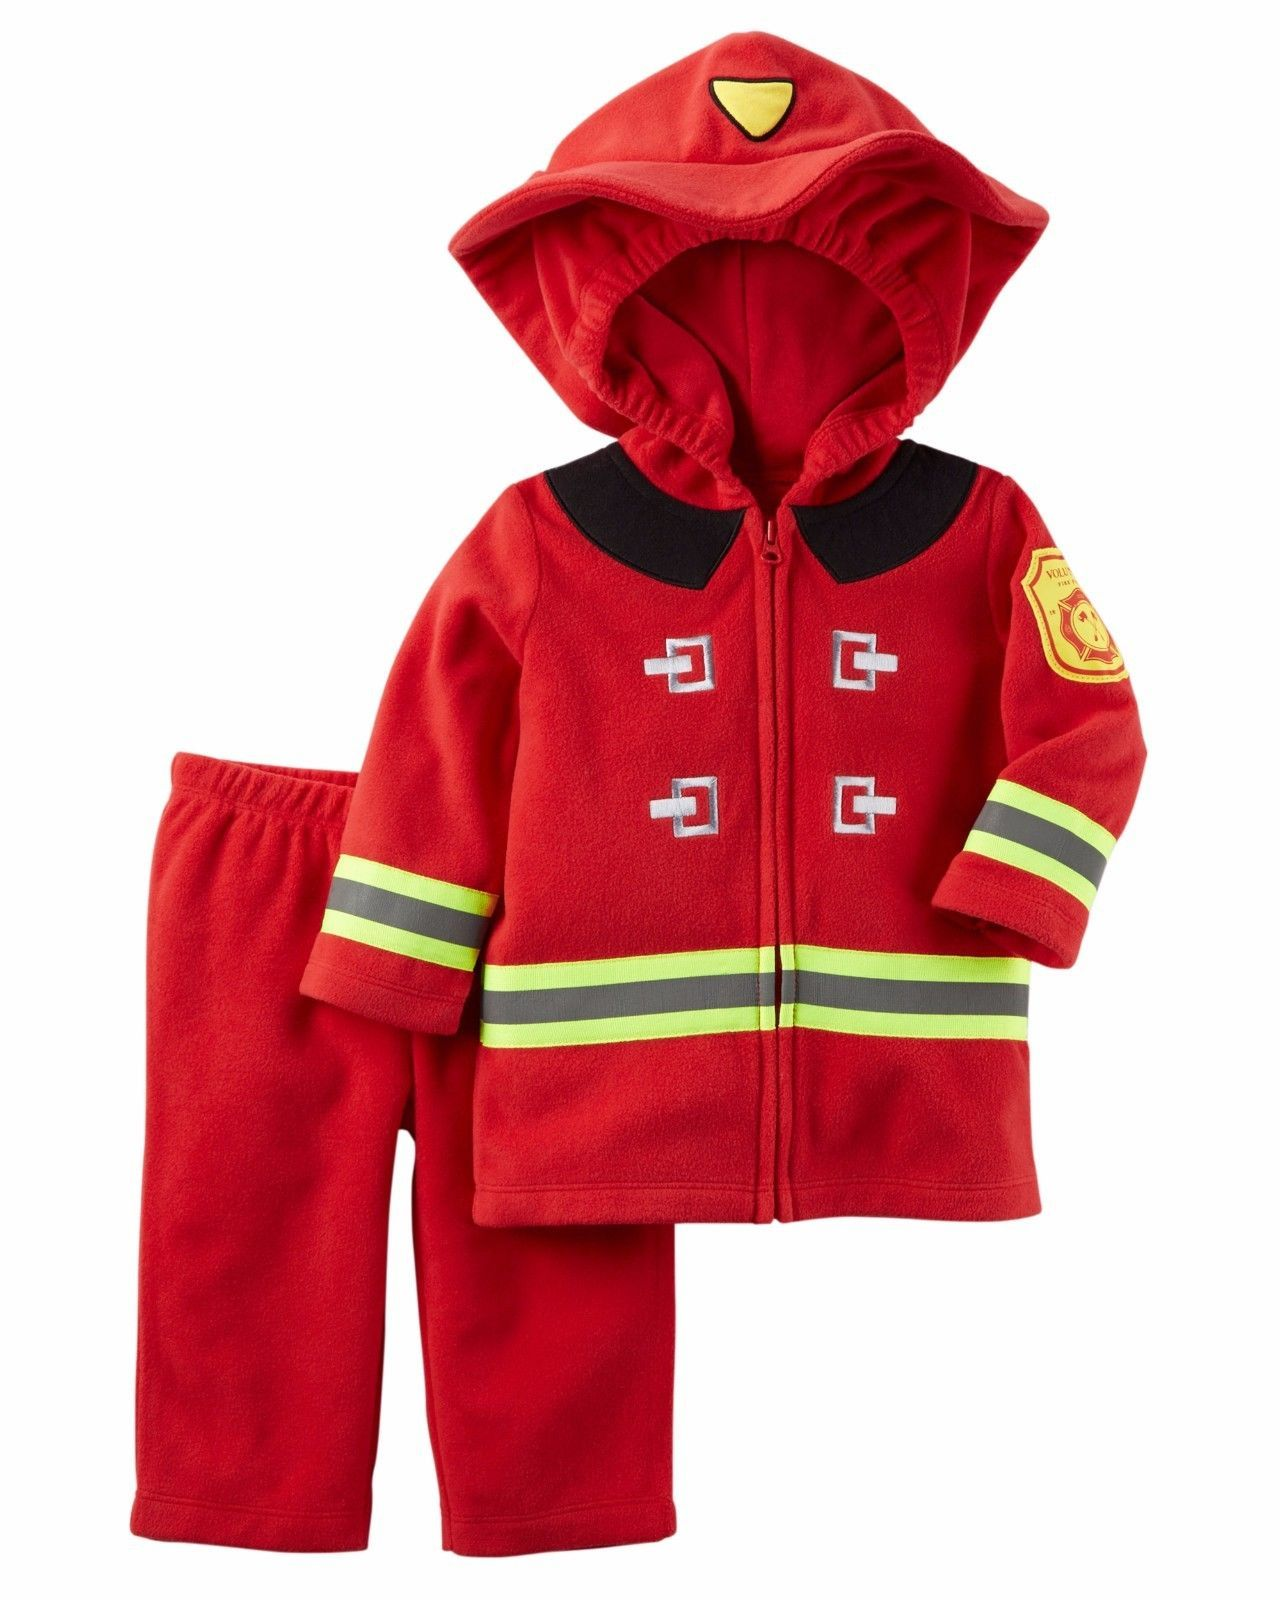 NEW NWT Boys Carter's Halloween Firefighter Costume 12 or 18 Months 2 Piece